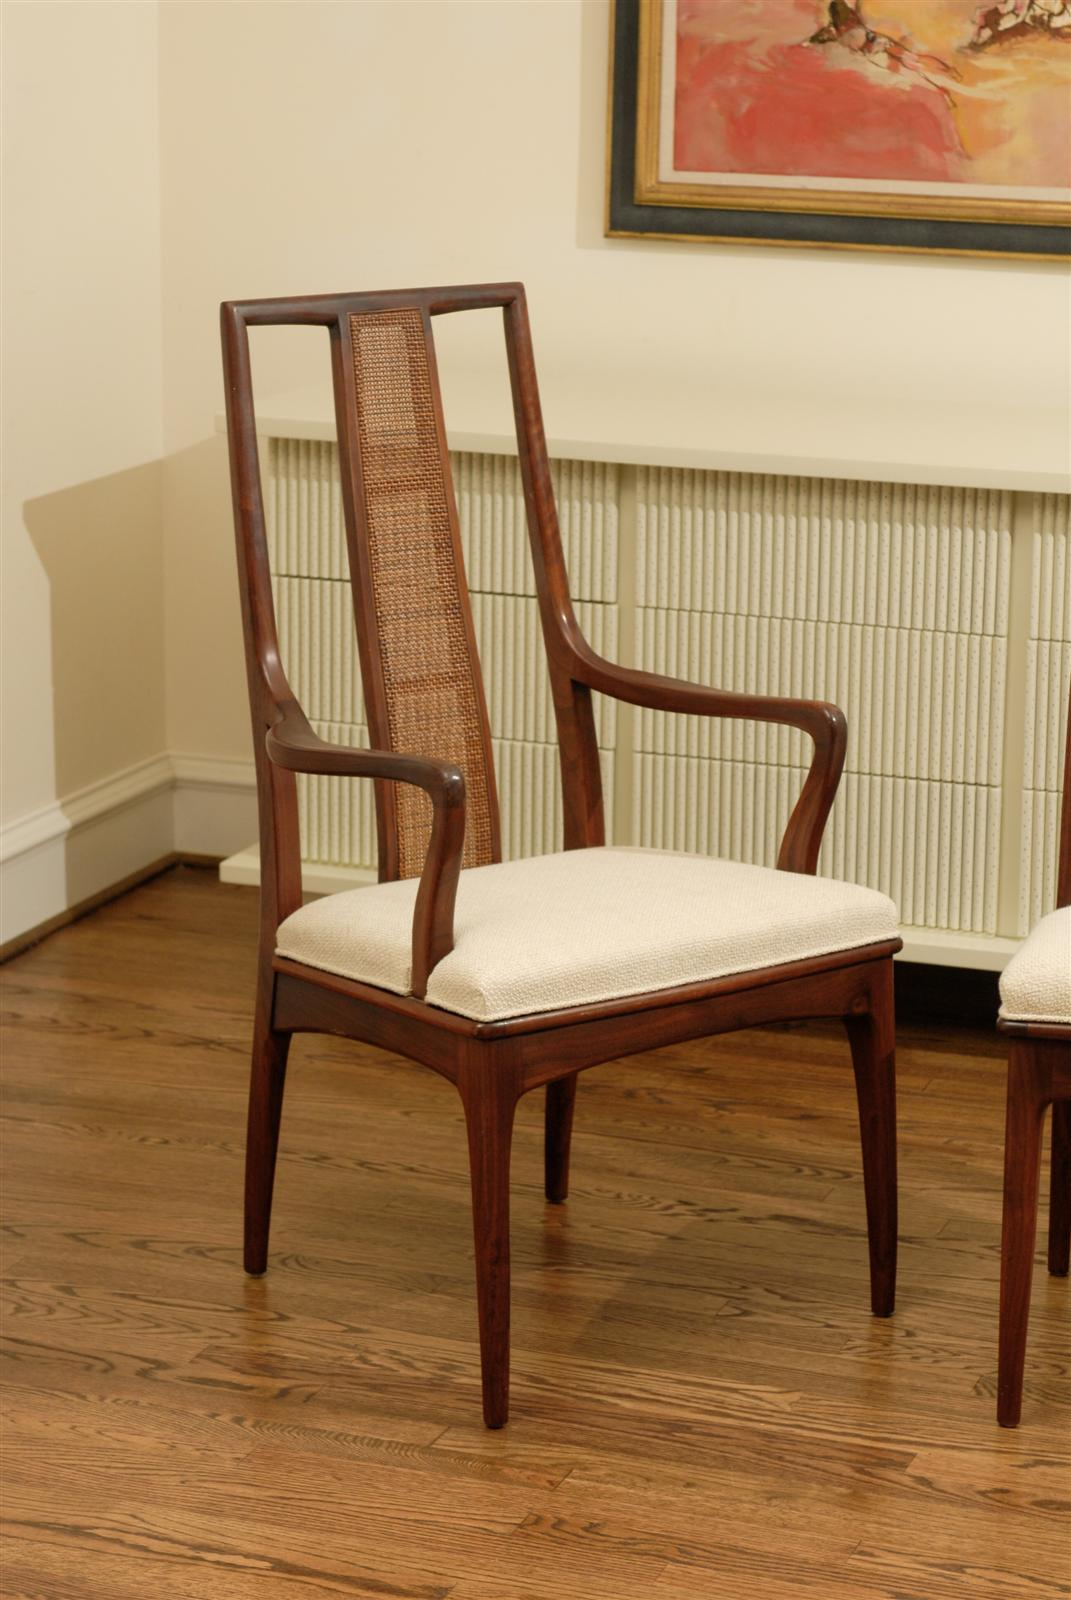 Mid-20th Century Elegant Set of Six Walnut and Cane Dining Chairs by John Stuart For Sale